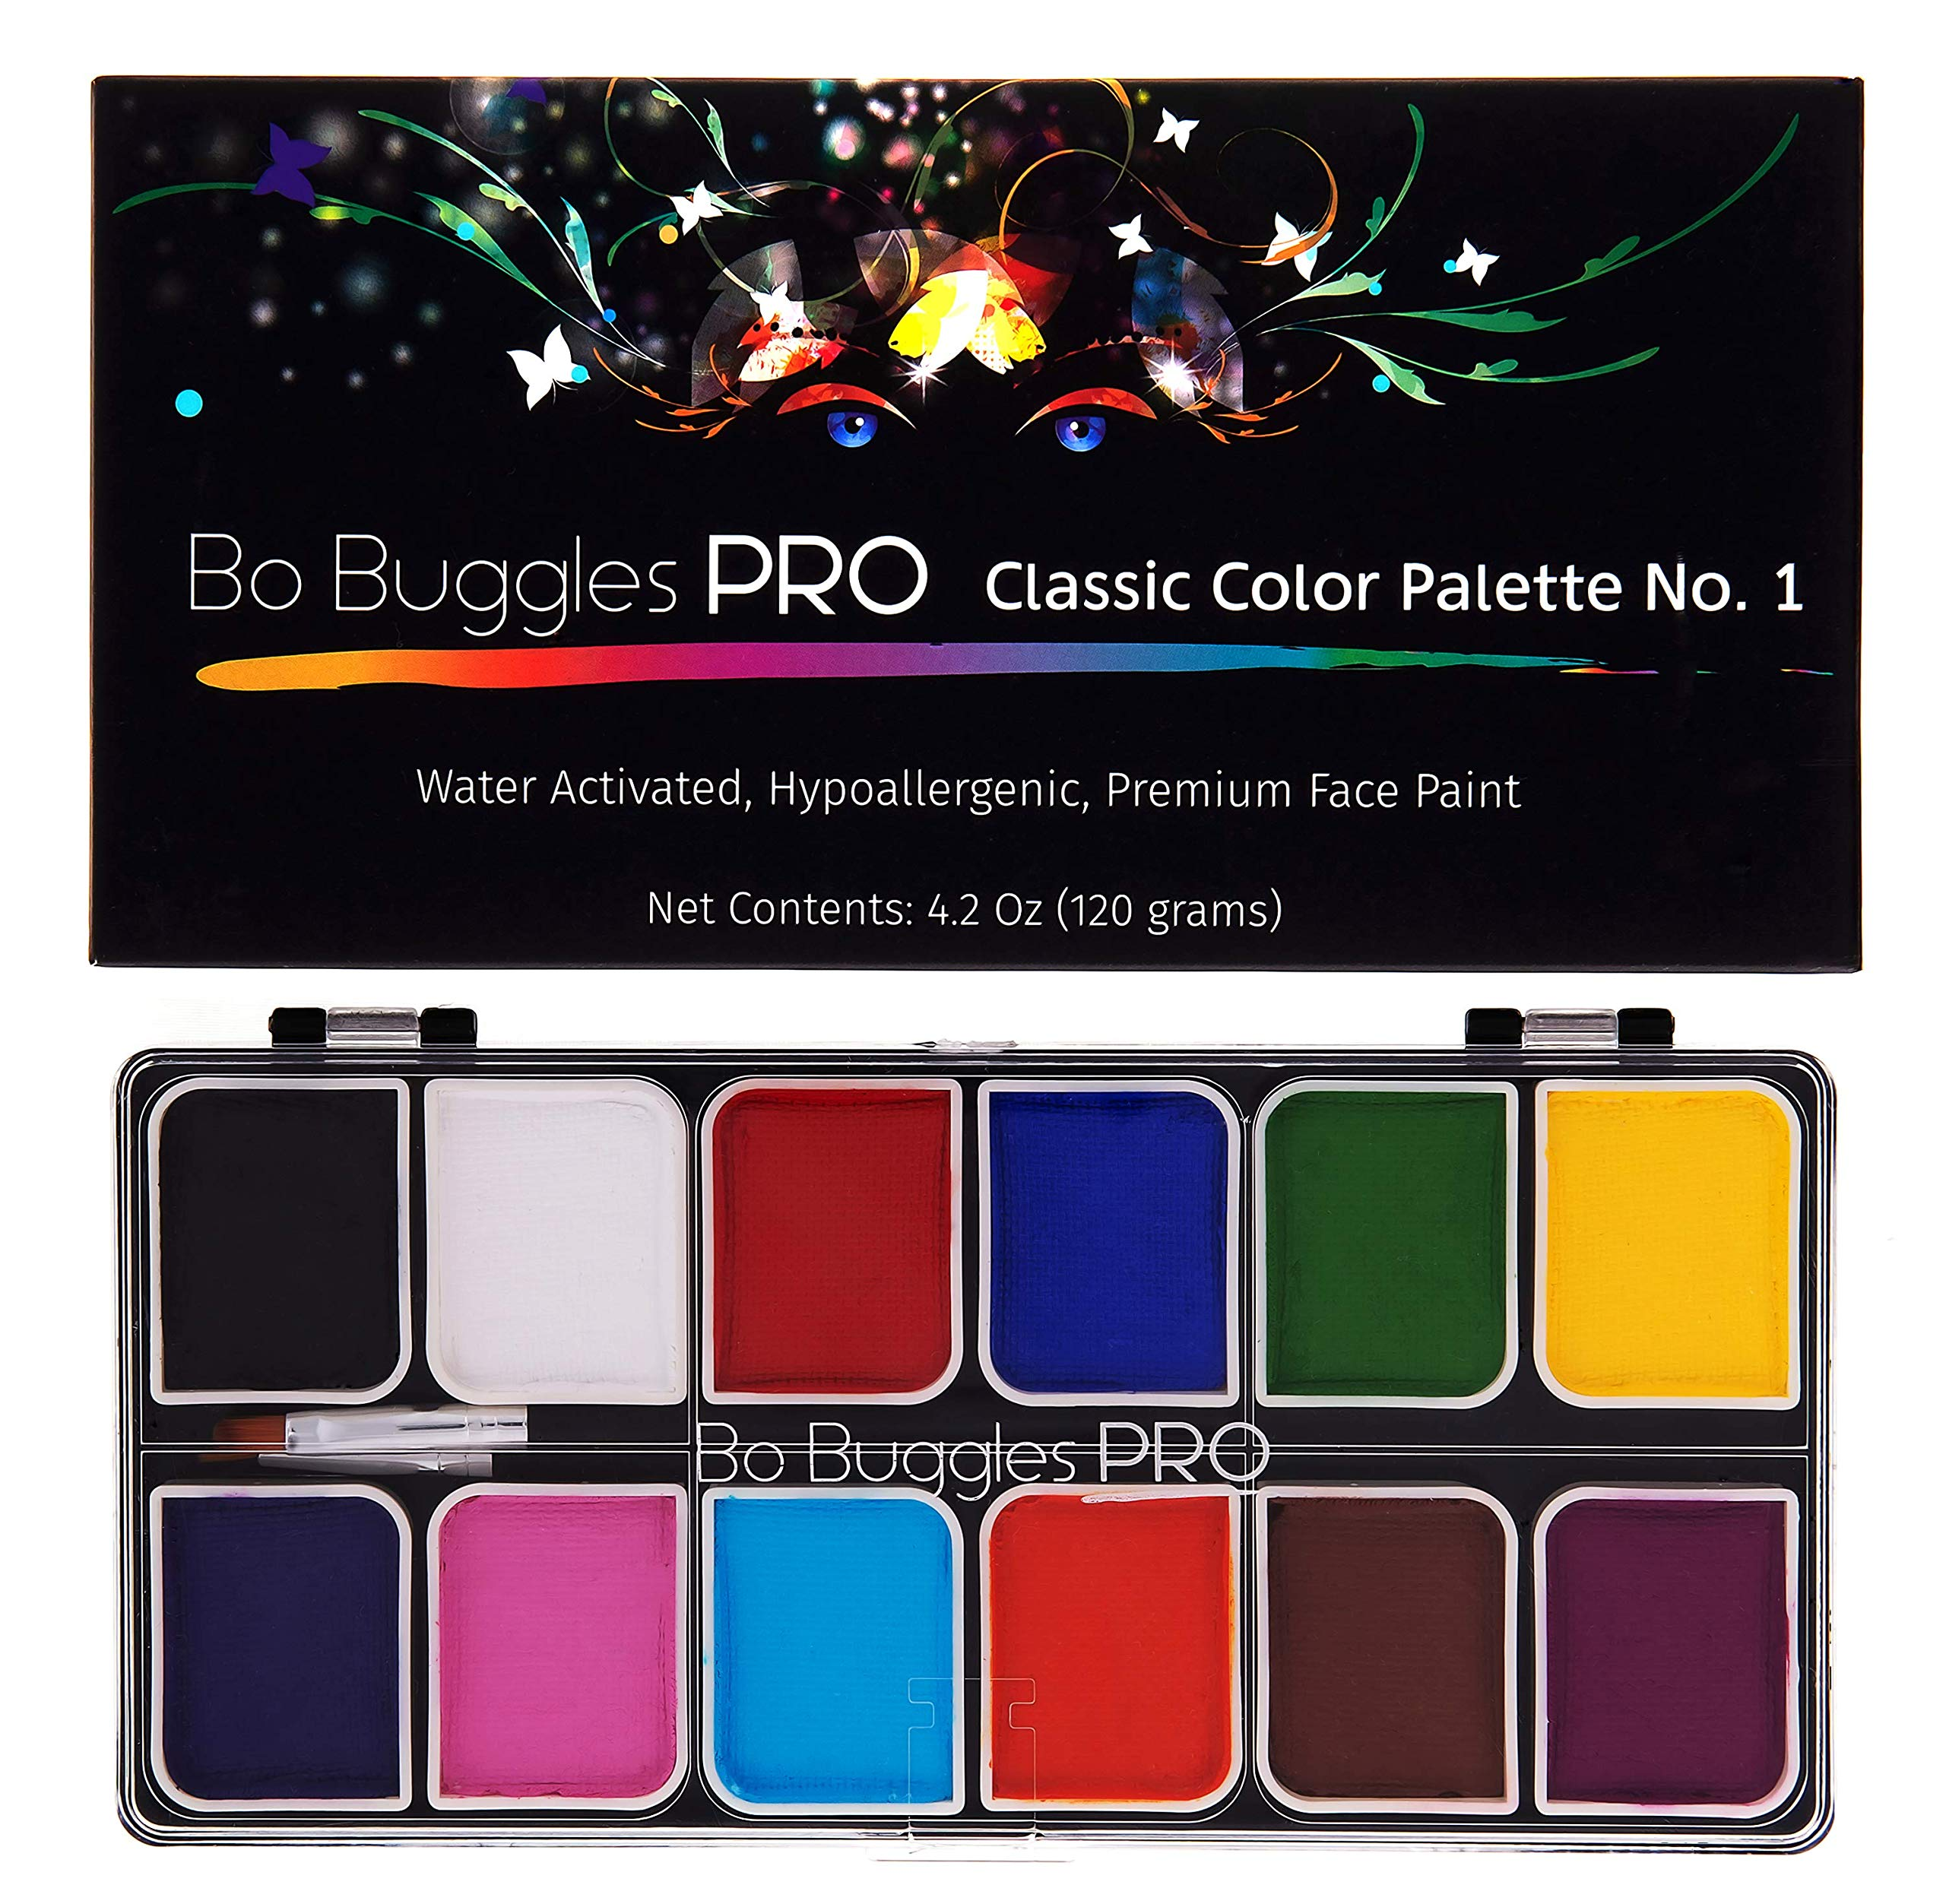 Bo Buggles Professional Face Paint Kit. Face Painting Palette No.1 Water-Activated Loved by Pro Painters for Vibrant Detailed Designs. 12x10 Gram Paints +2 Brushes. Safe Quality Makeup Paint Supplies